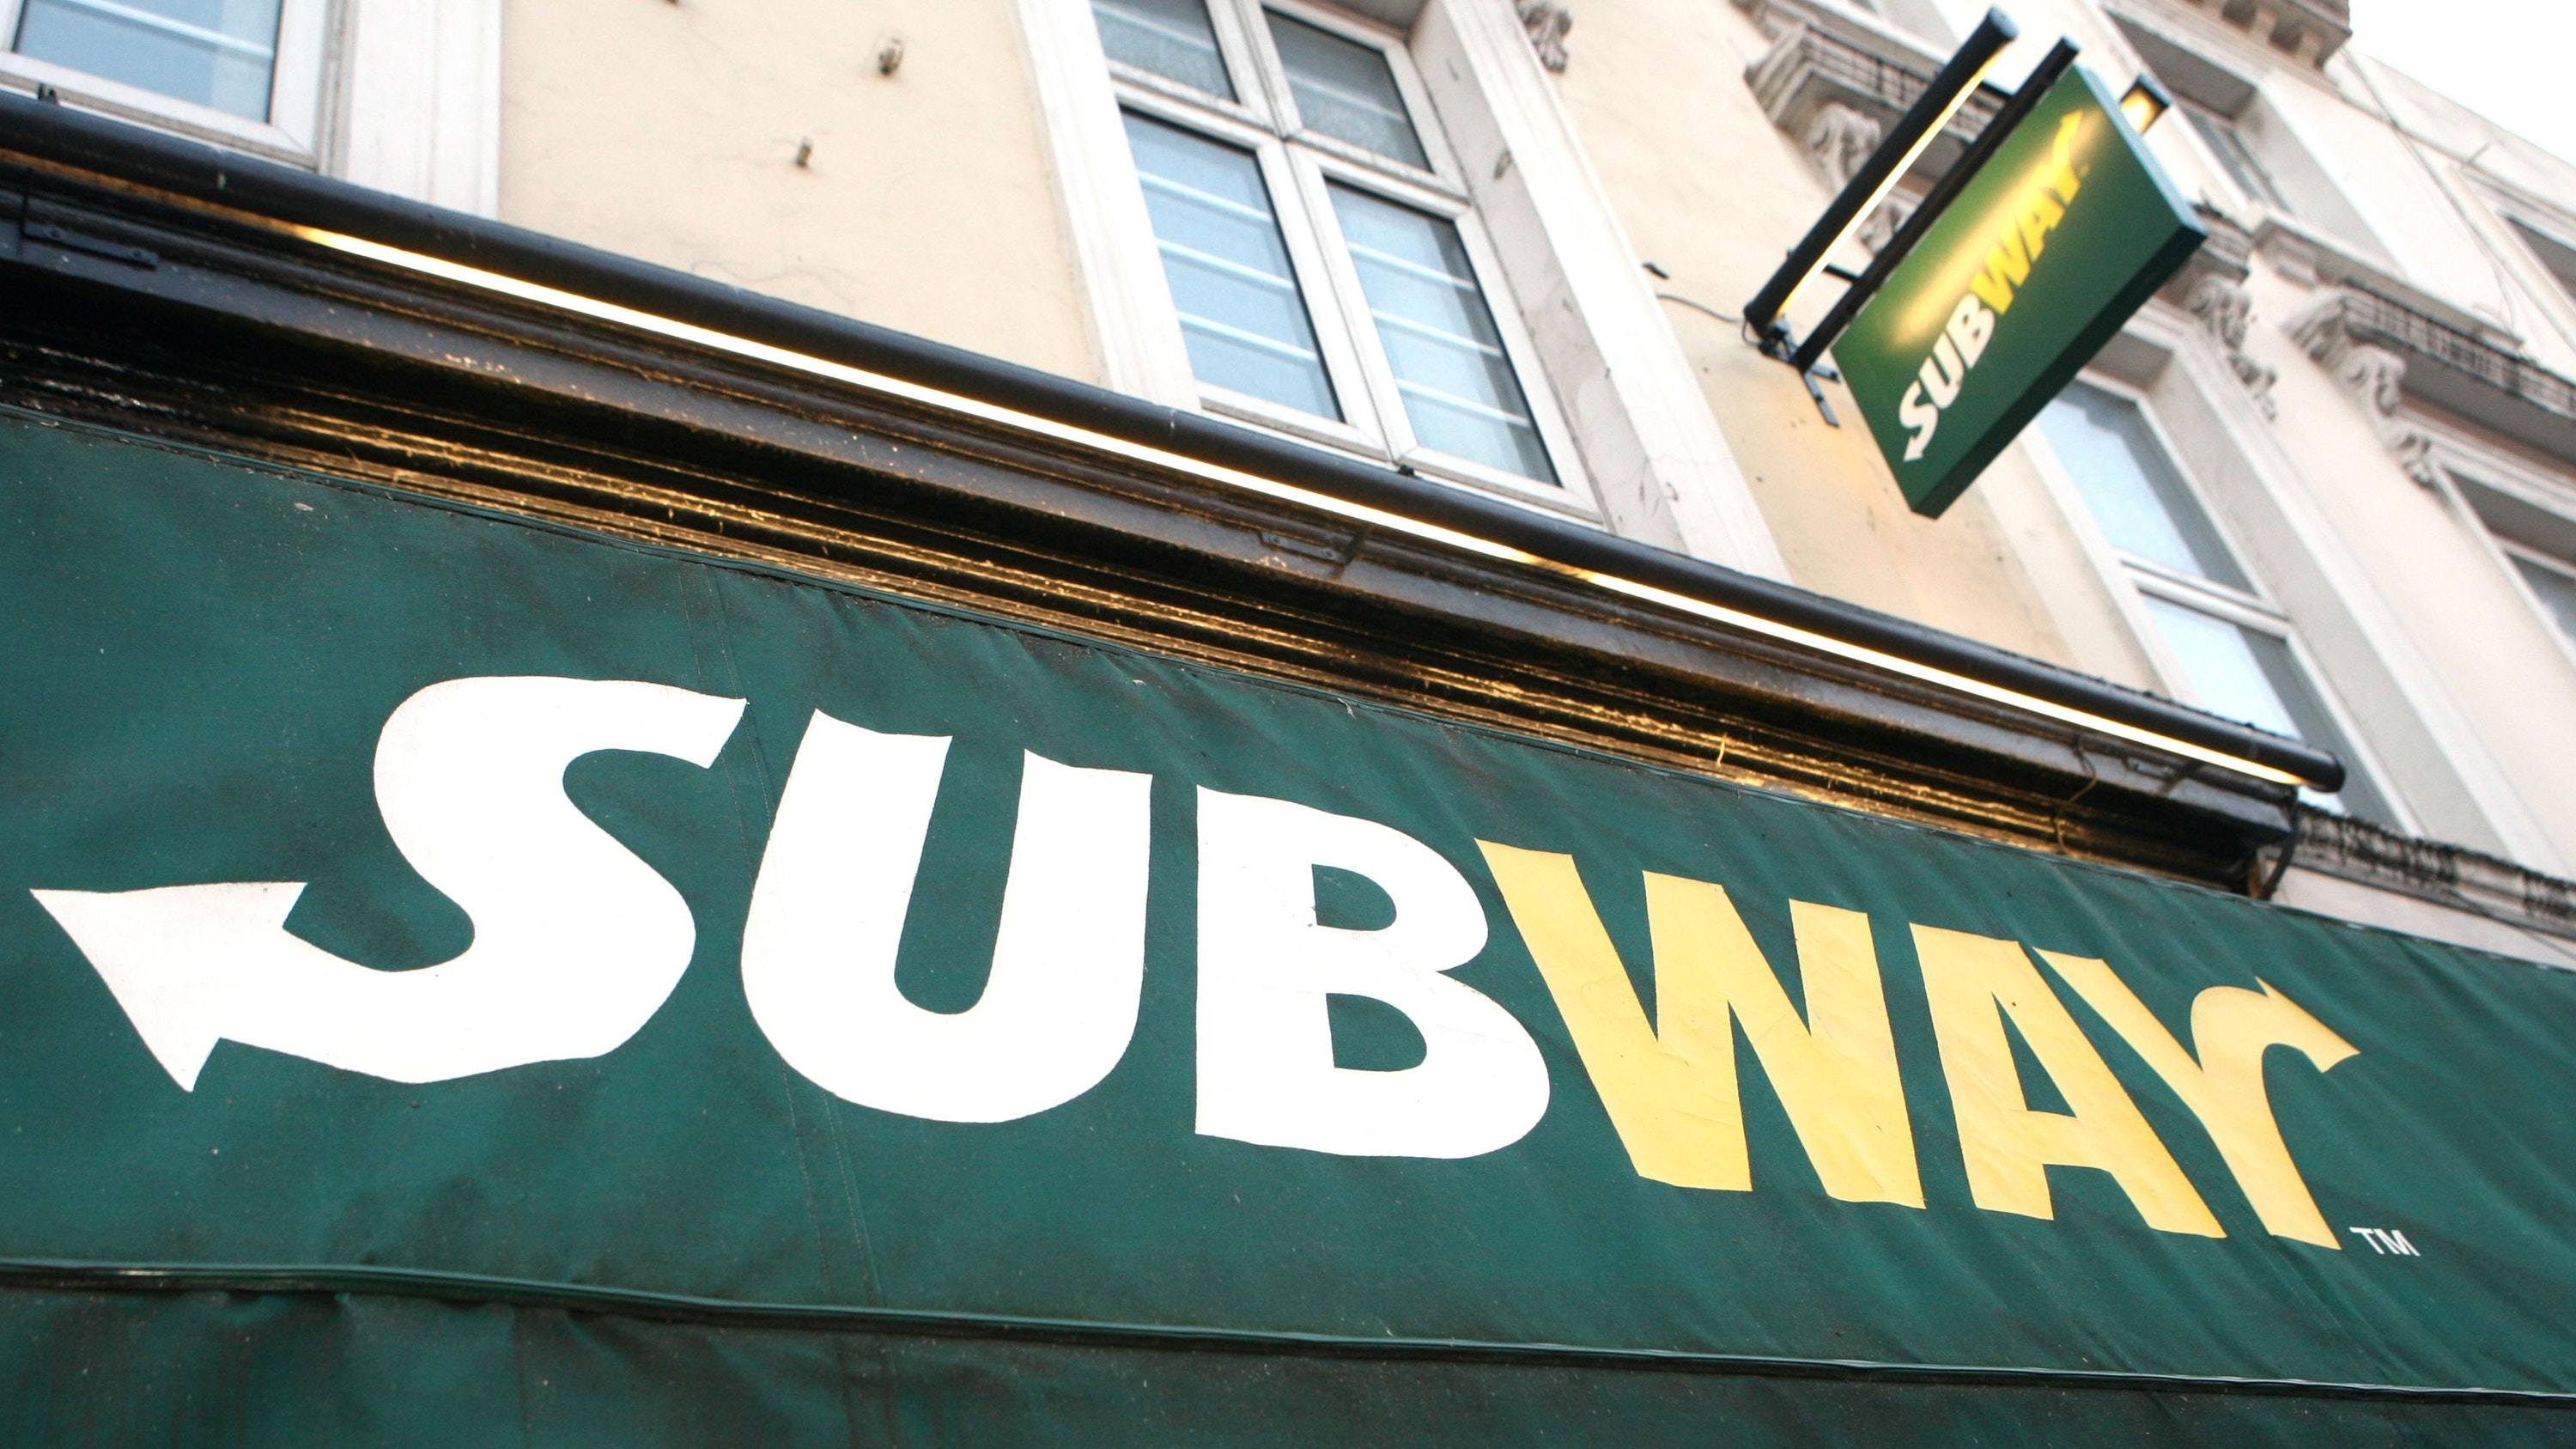 The sandwich chain has grown to 44,000 stores in 112 countries.